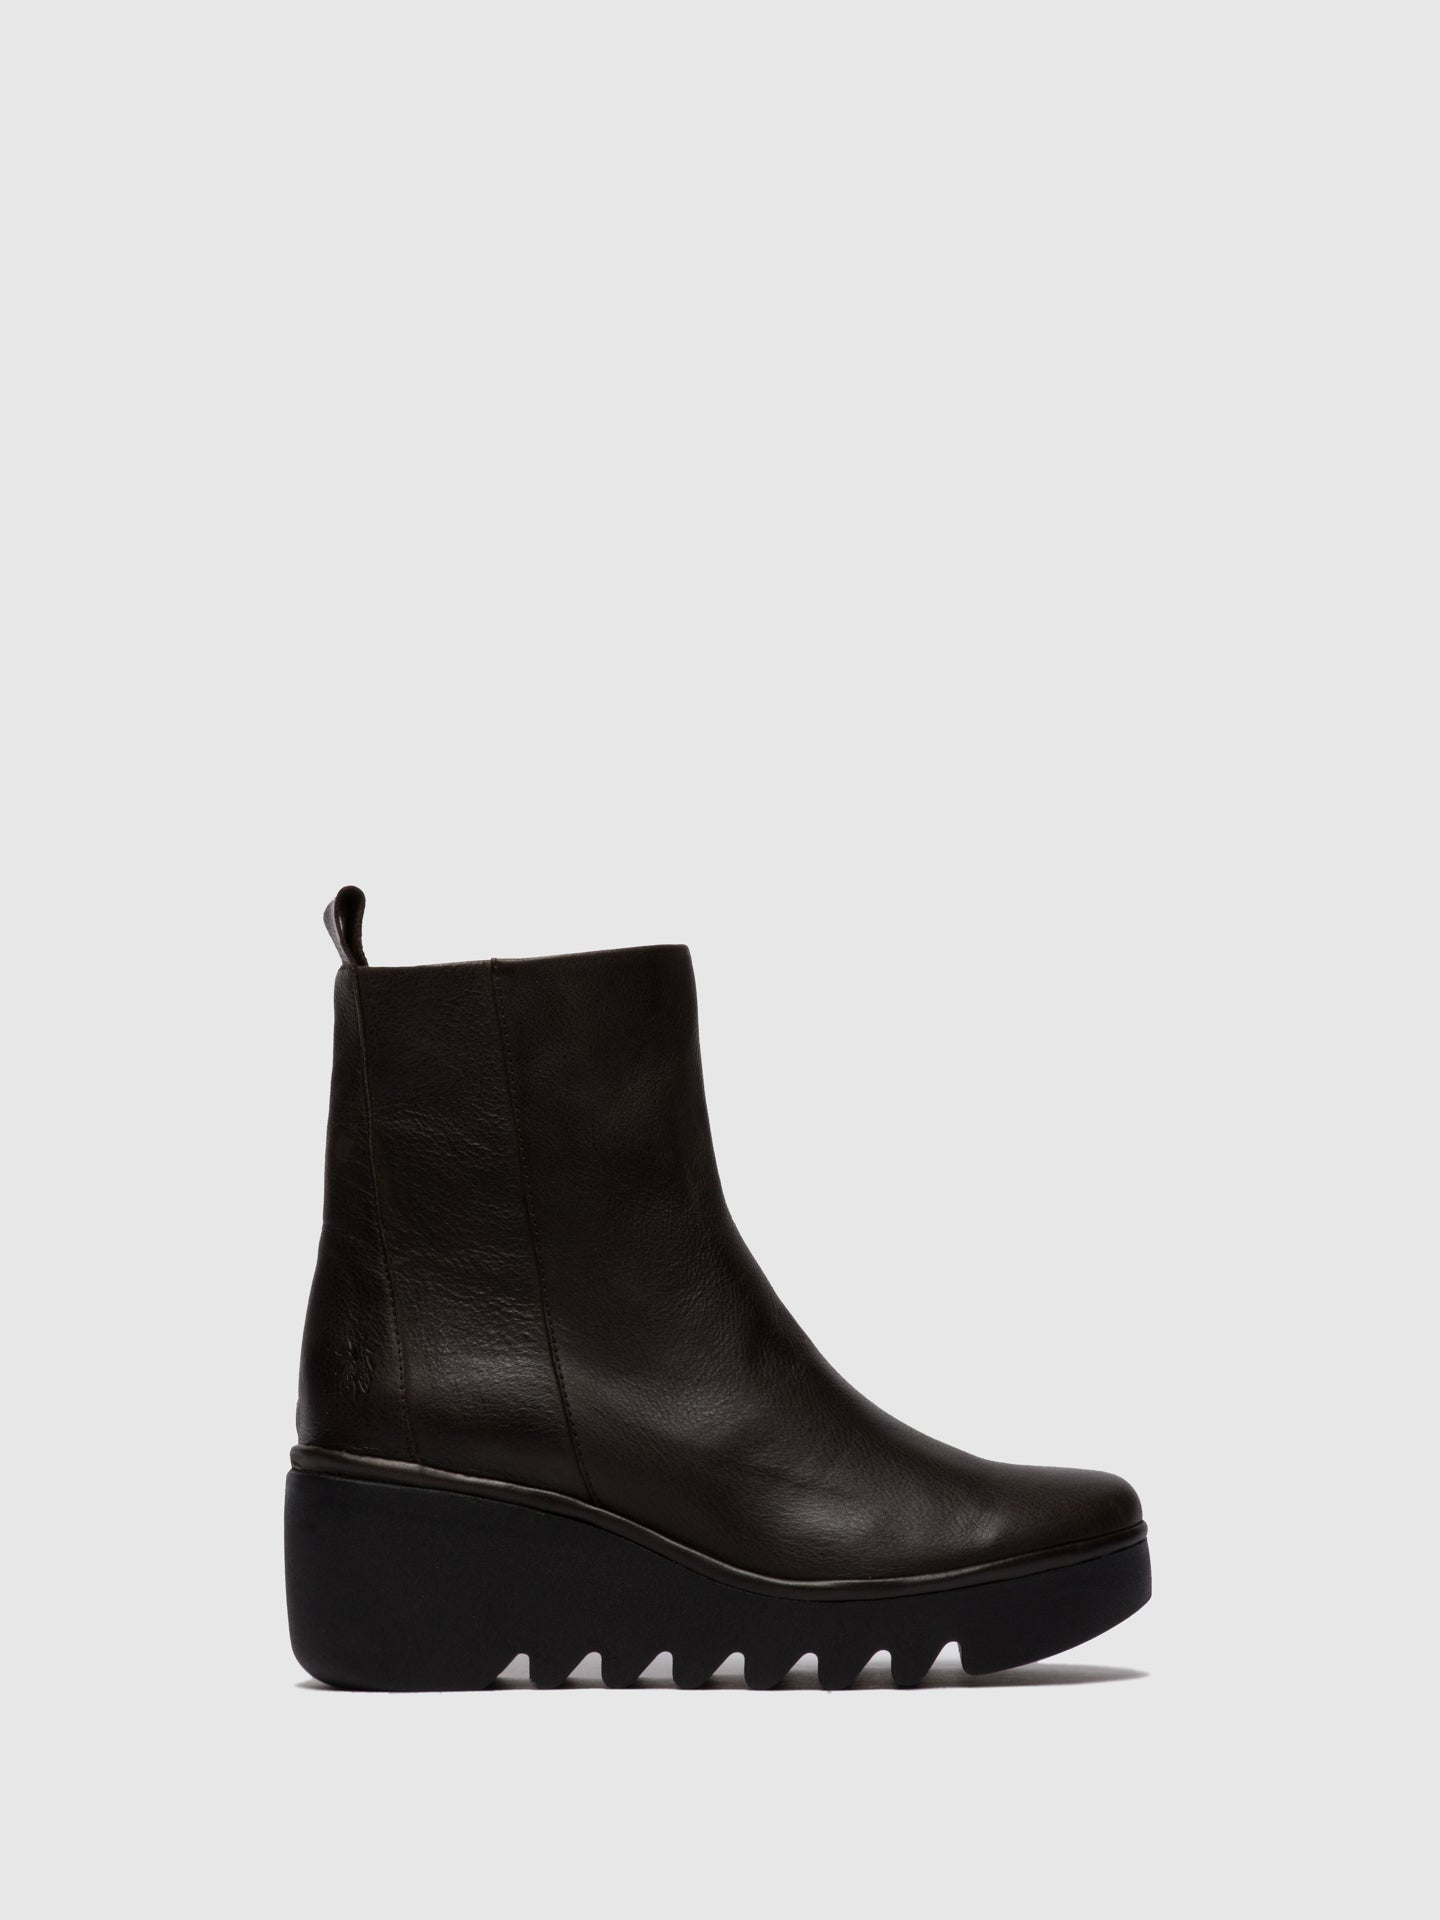 Fly London Zip Up Ankle Boots BALE250FLY VERONA GROUND